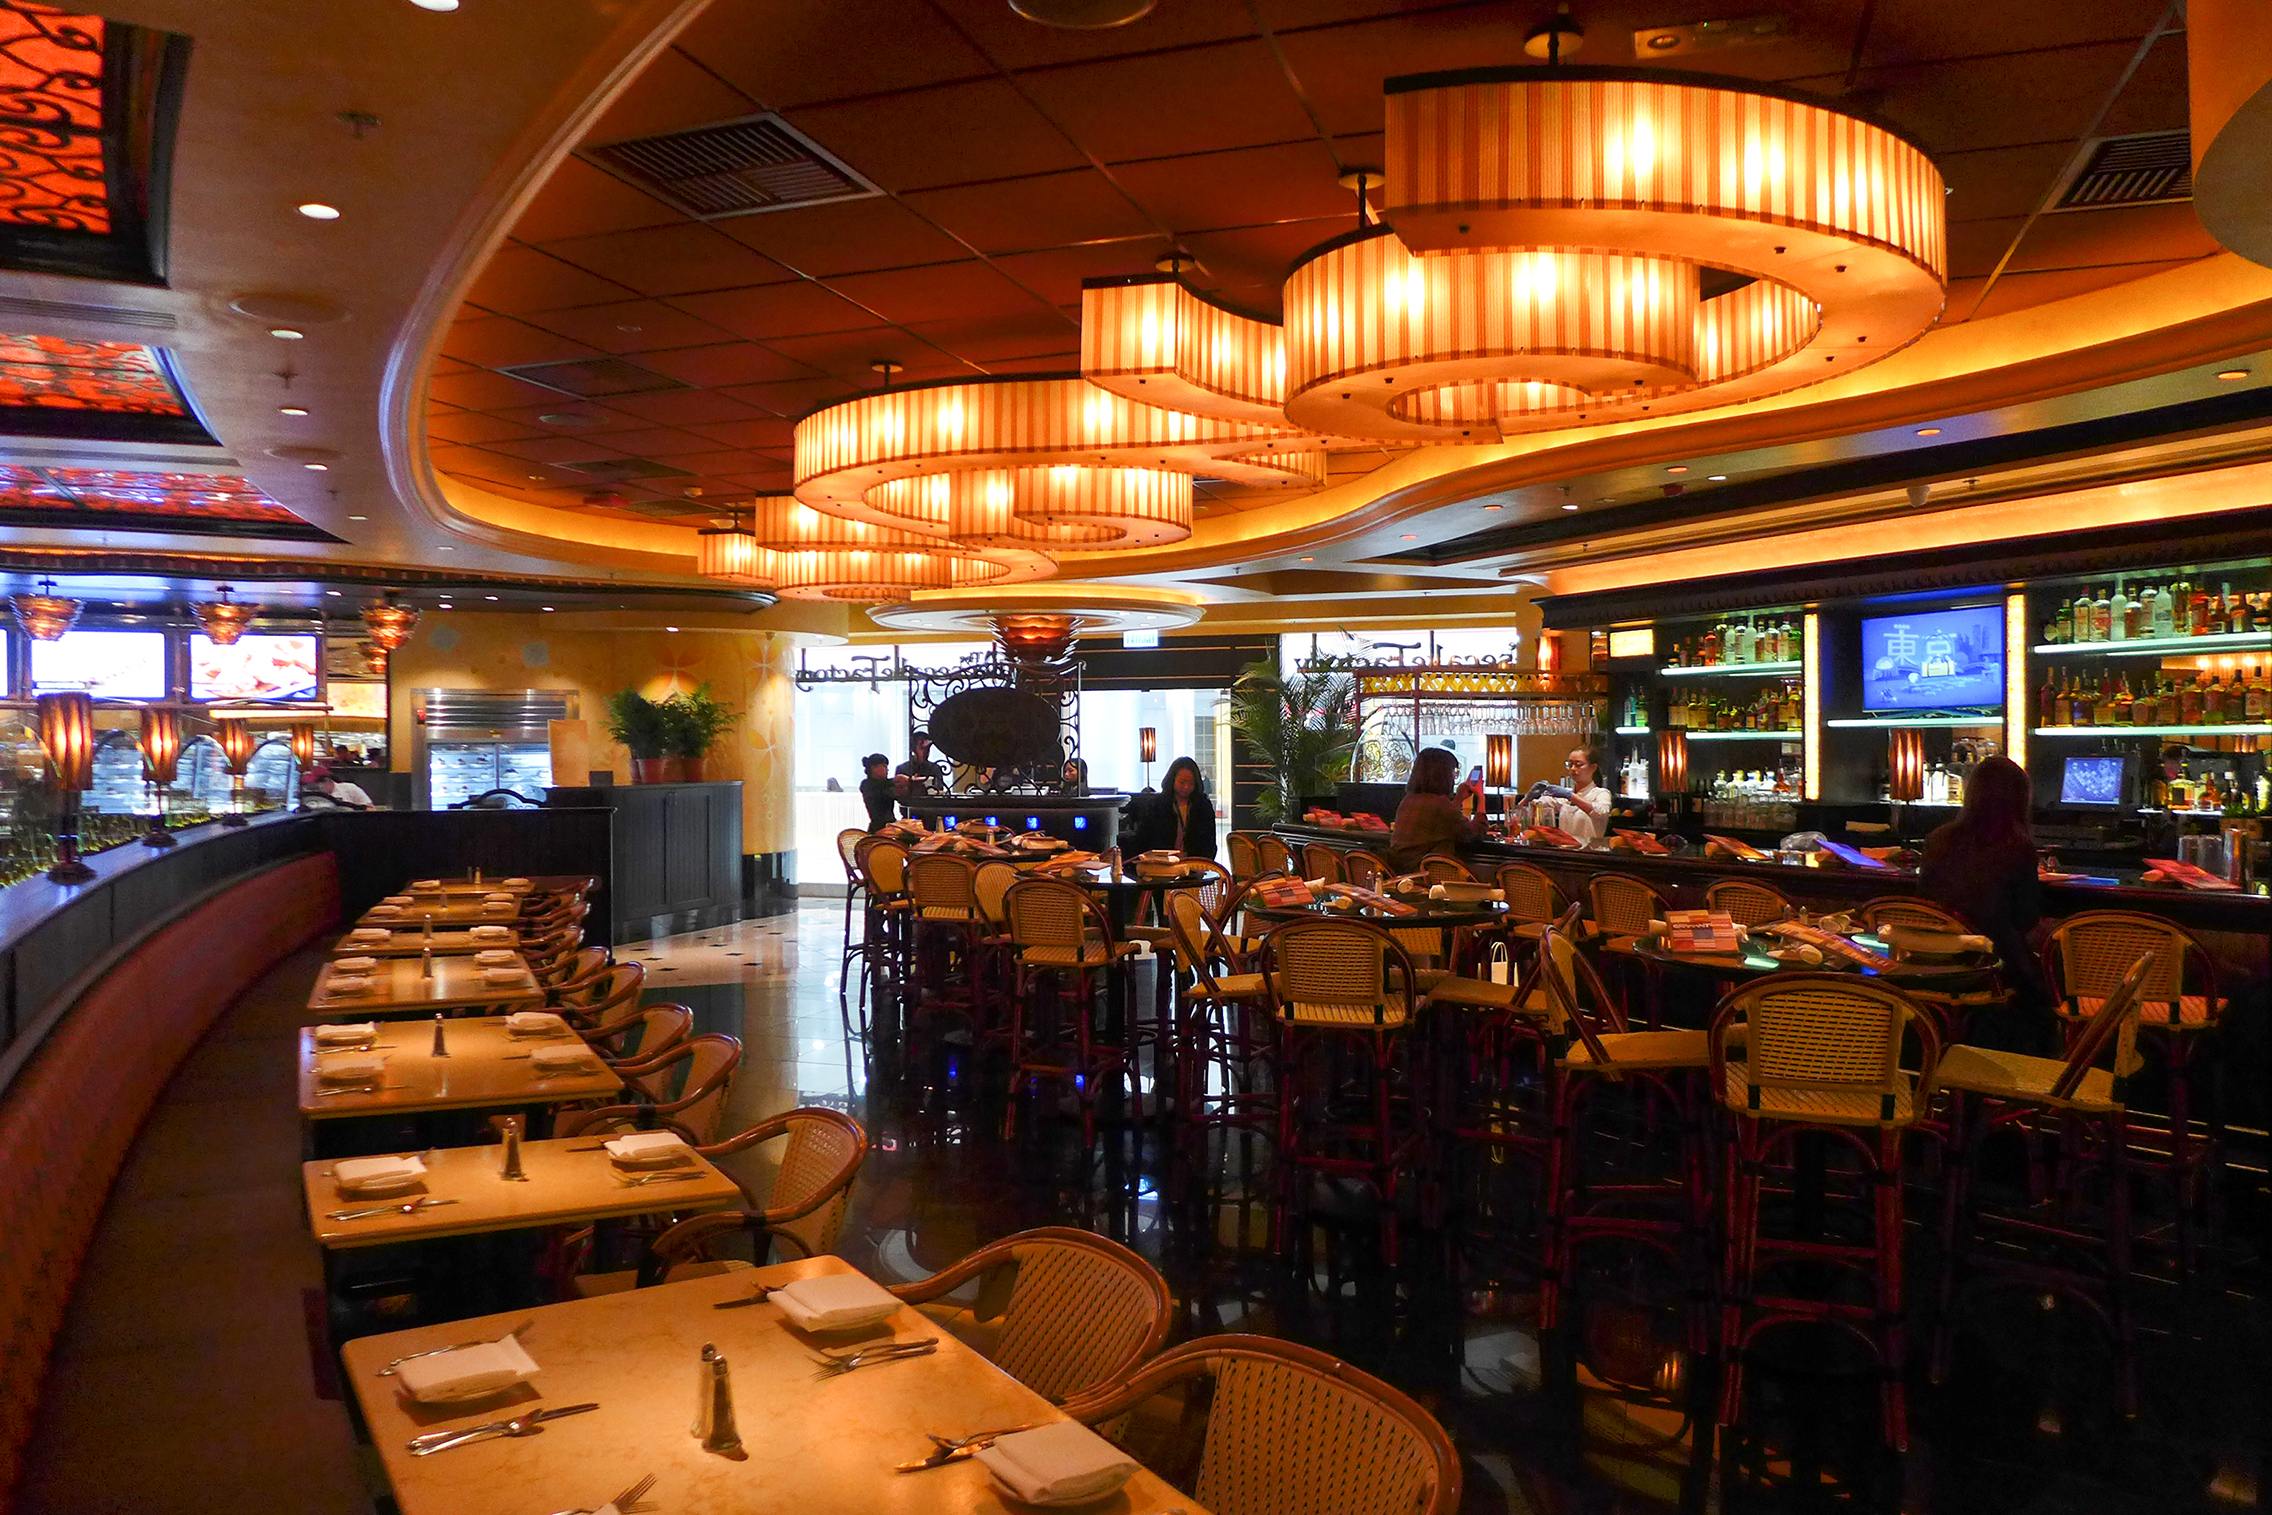 Interior of a Cheesecake Factory in Hong Kong. Image taken from  Wikimedia Commons , ©Wpcpey / Wikimedia Commons.